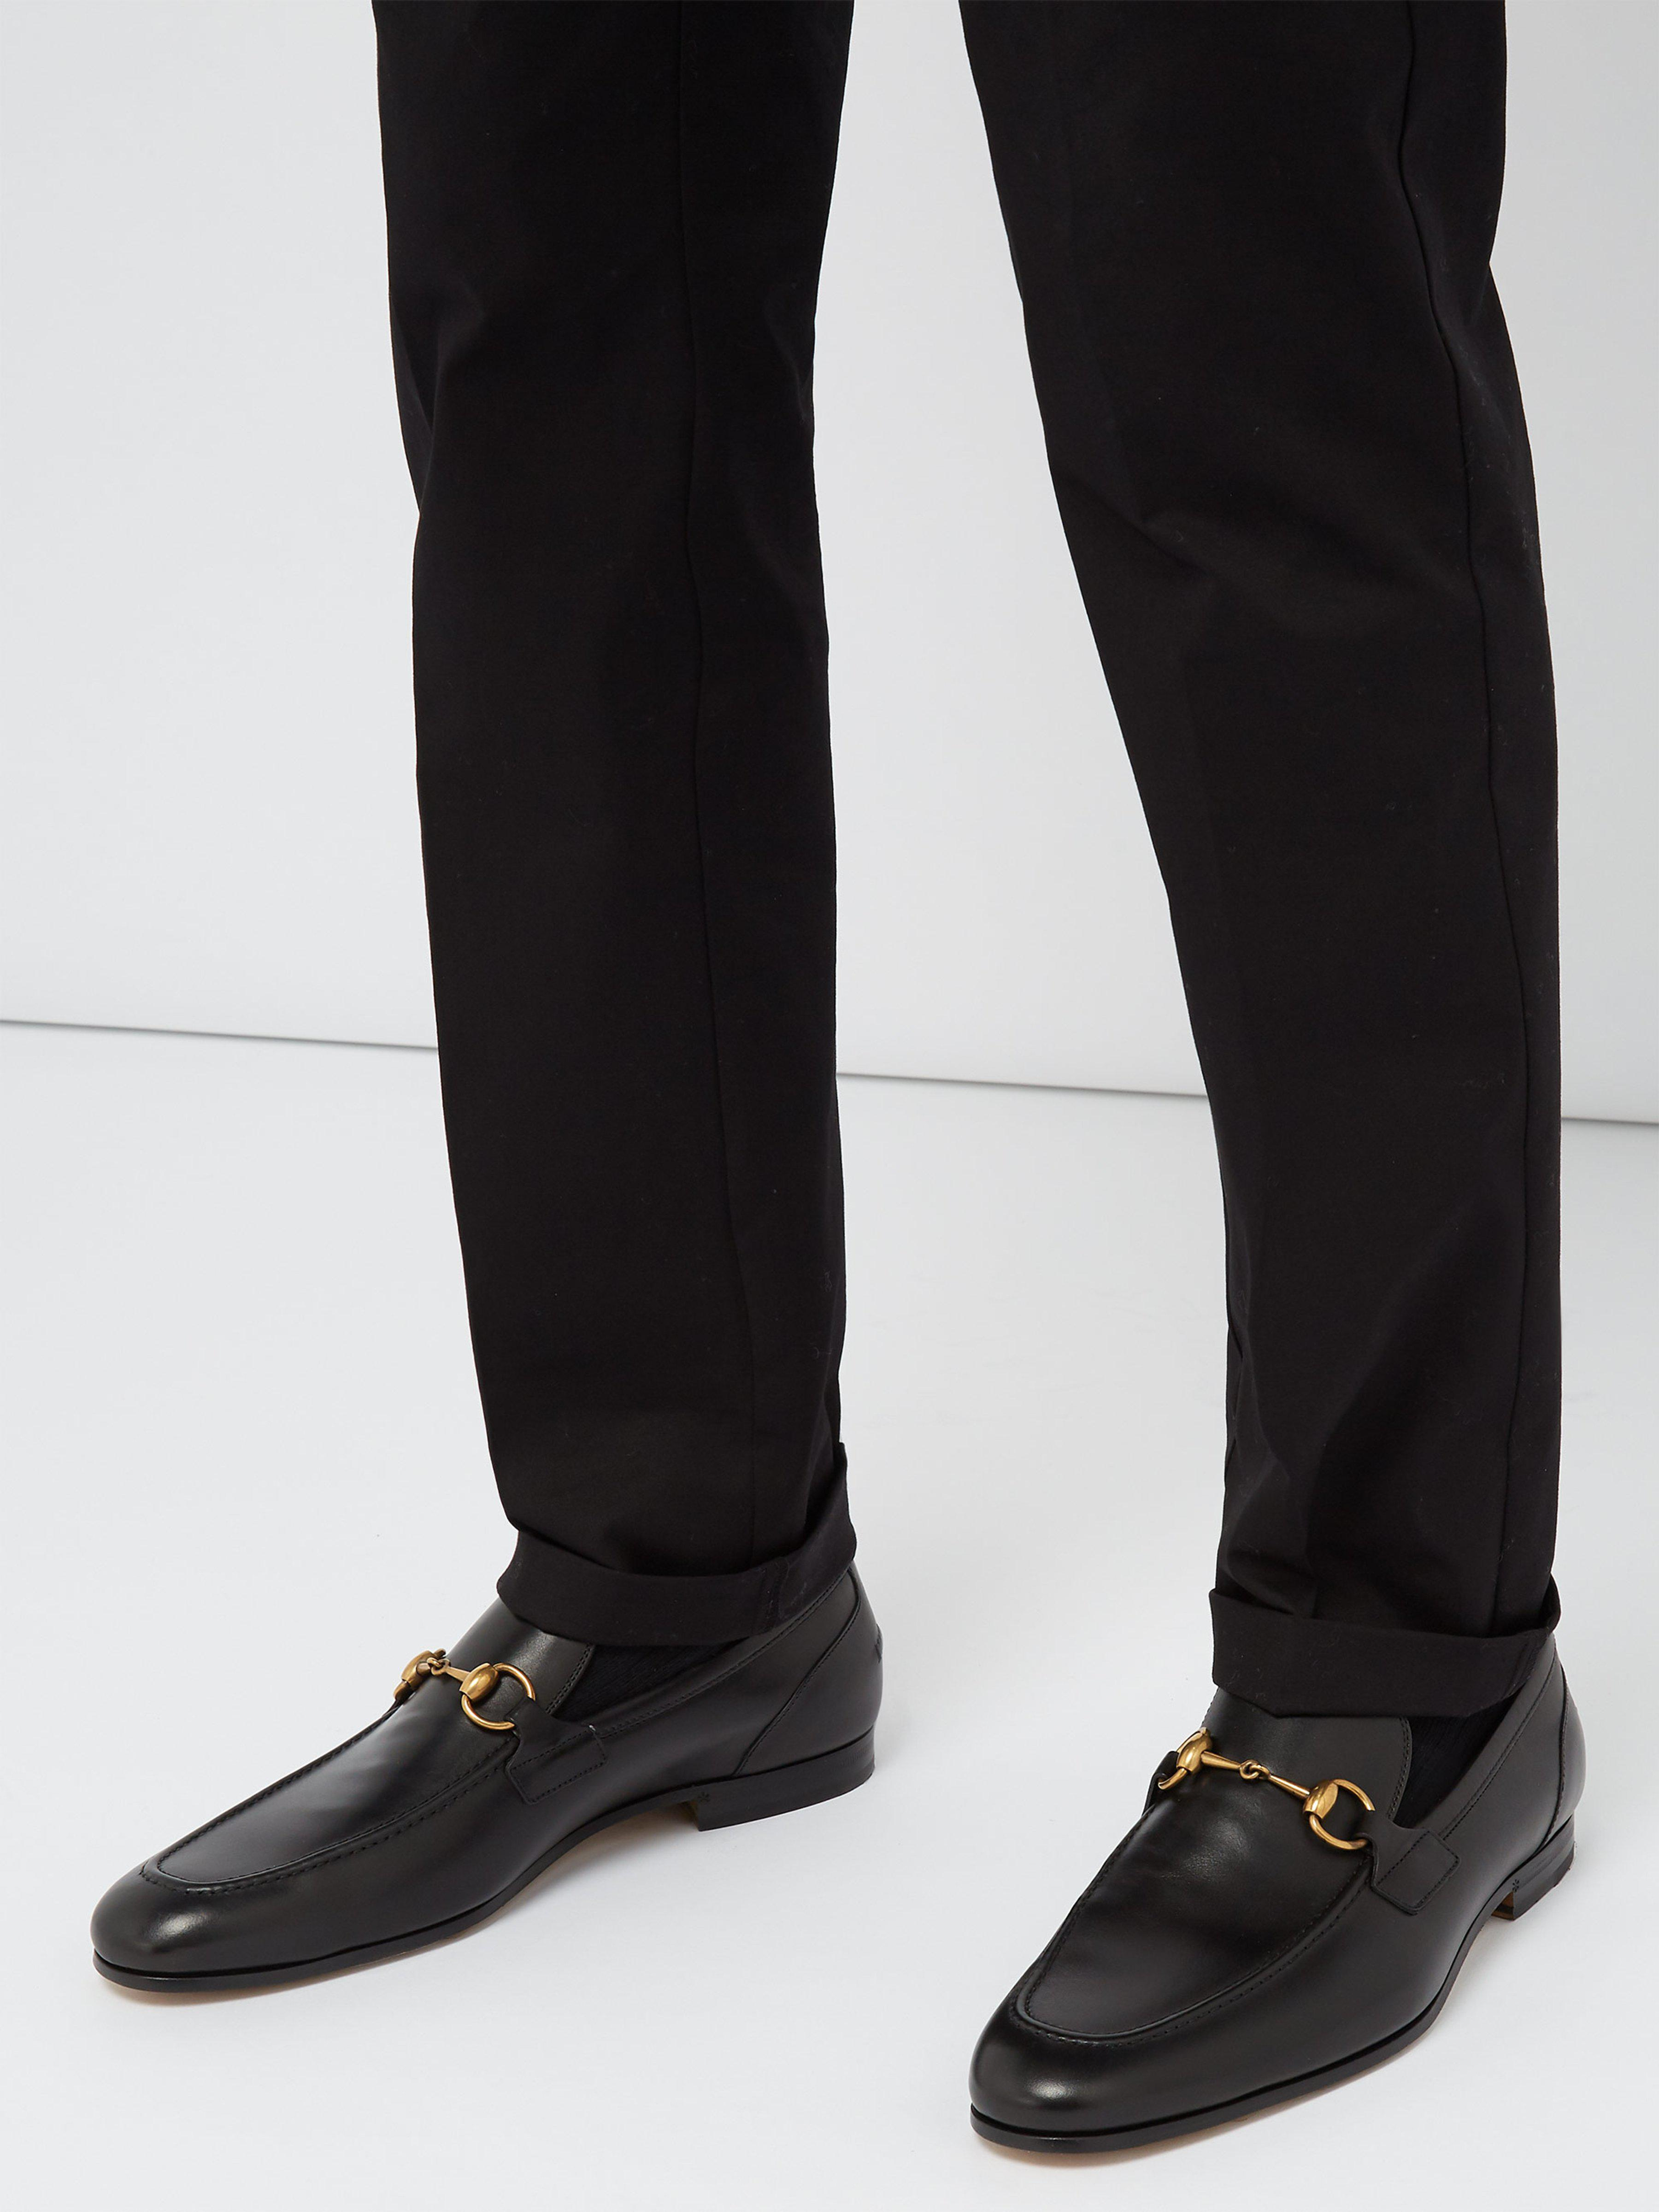 8fc1c55cd07 Gucci - Black Jordaan Leather Loafers for Men - Lyst. View fullscreen